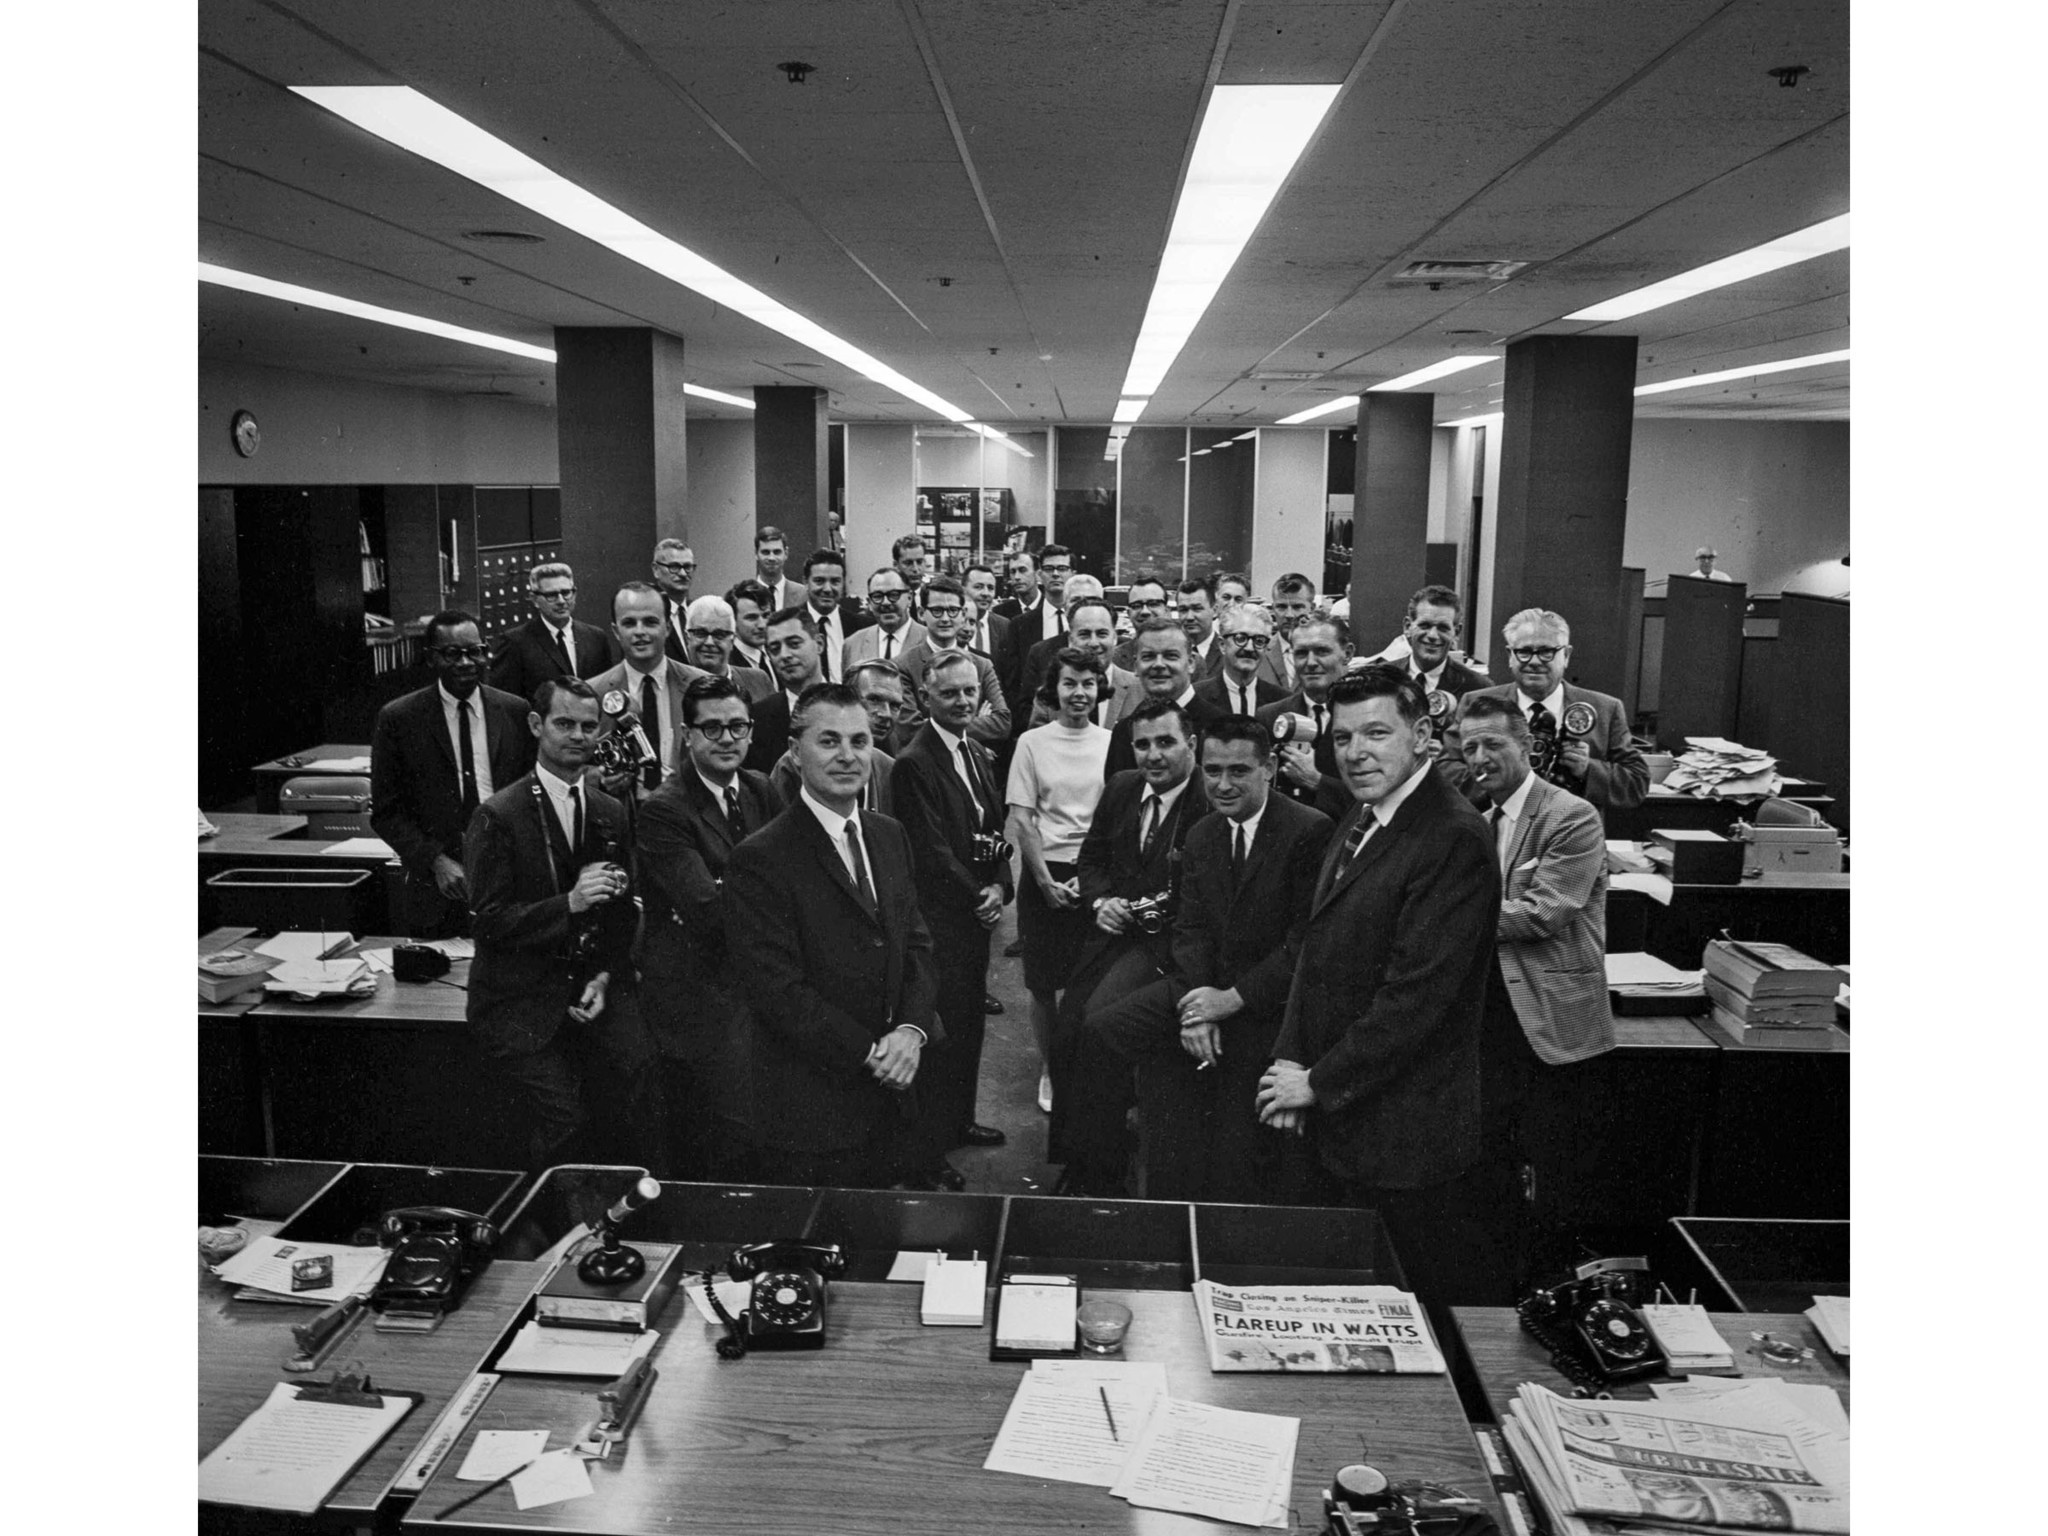 Dorothy Townsend, one of the first female reporters in the Times newsroom, has died. She was 88. Tow